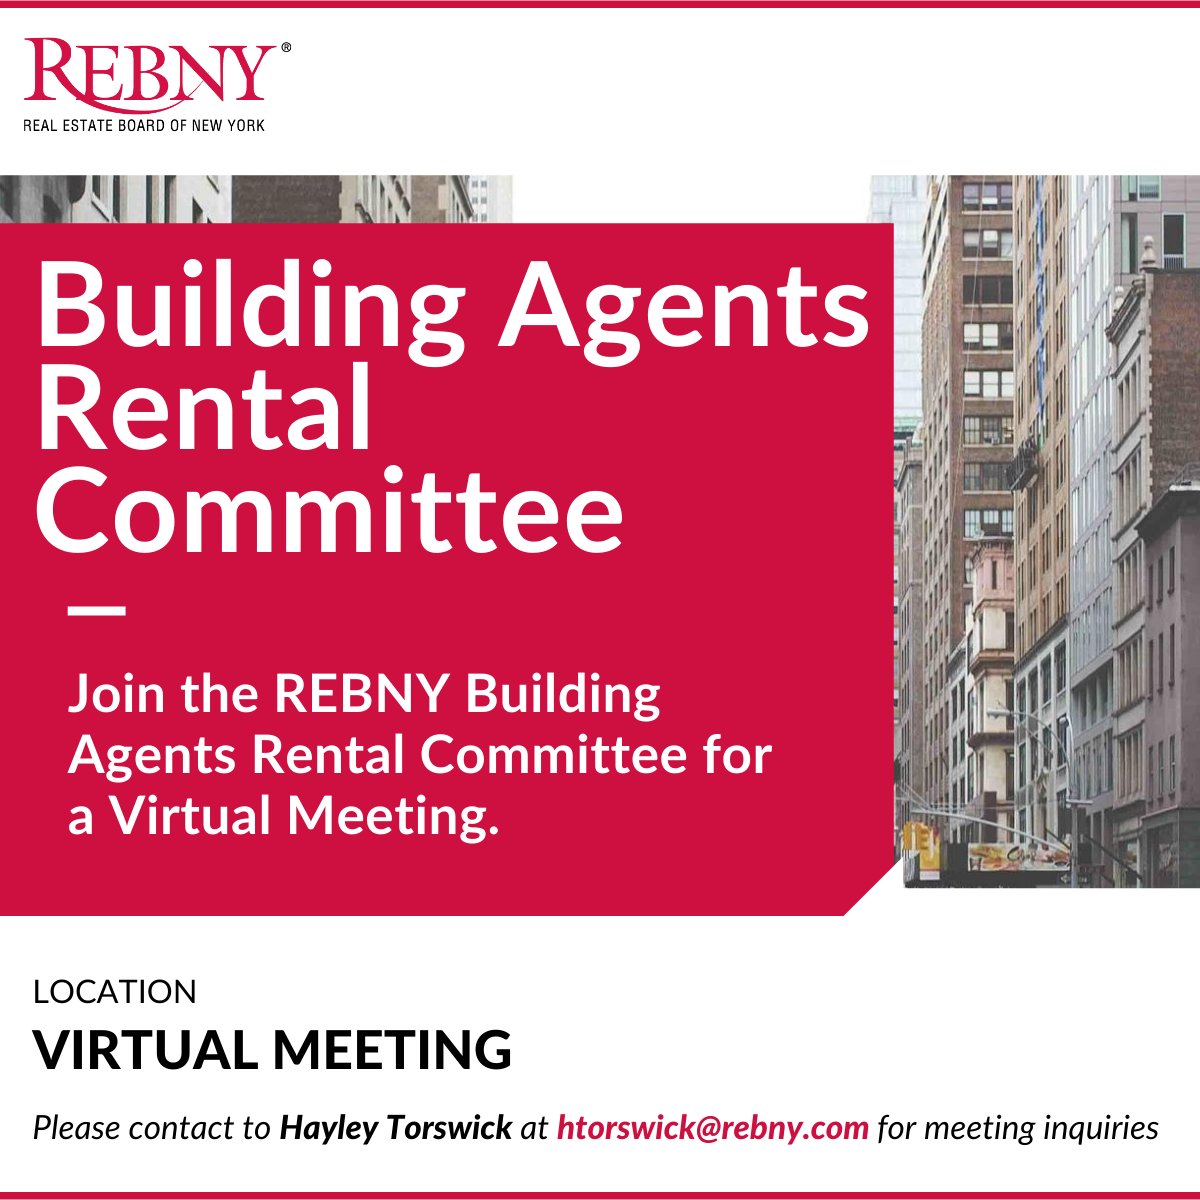 VIRTUAL: Commercial Brokerage Building Agents Rental Committee Meeting (BARC)